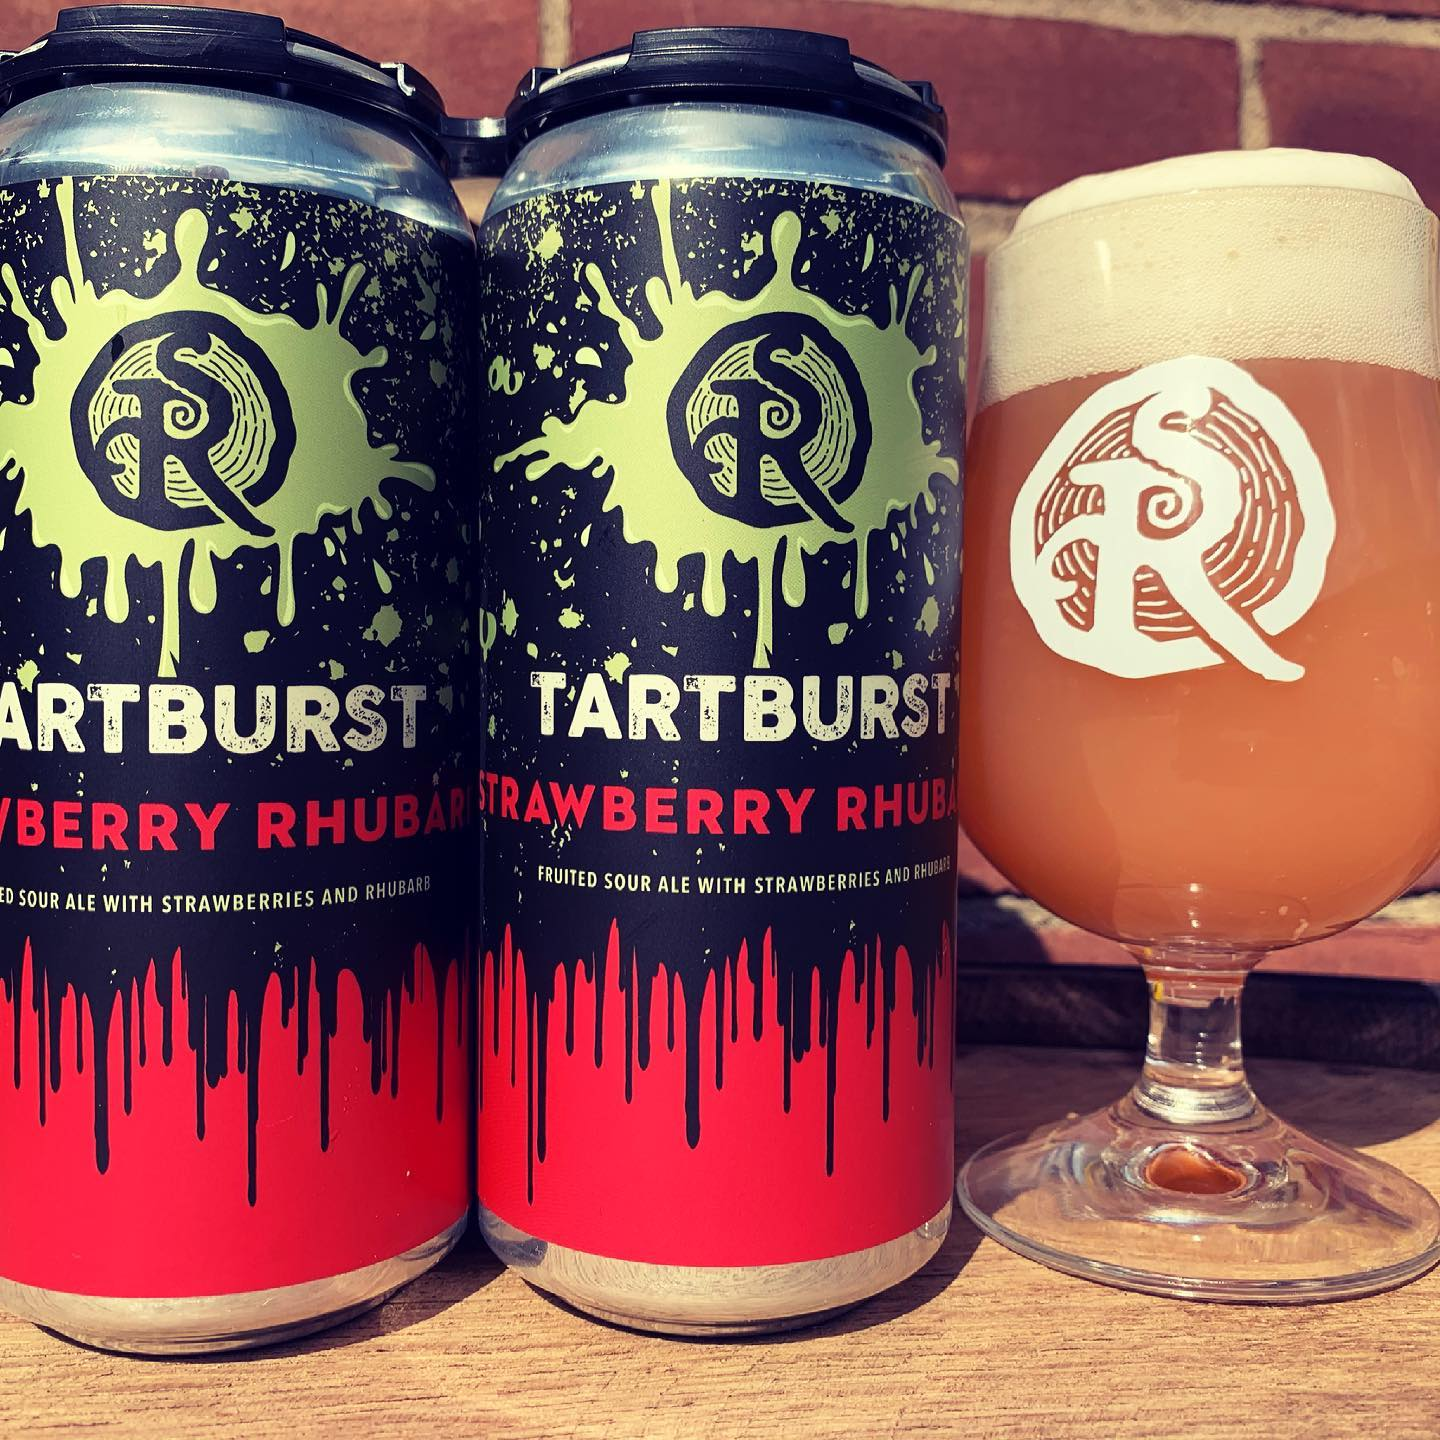 Strawberry Rhubarb Tartburst (4 Pack Cans)